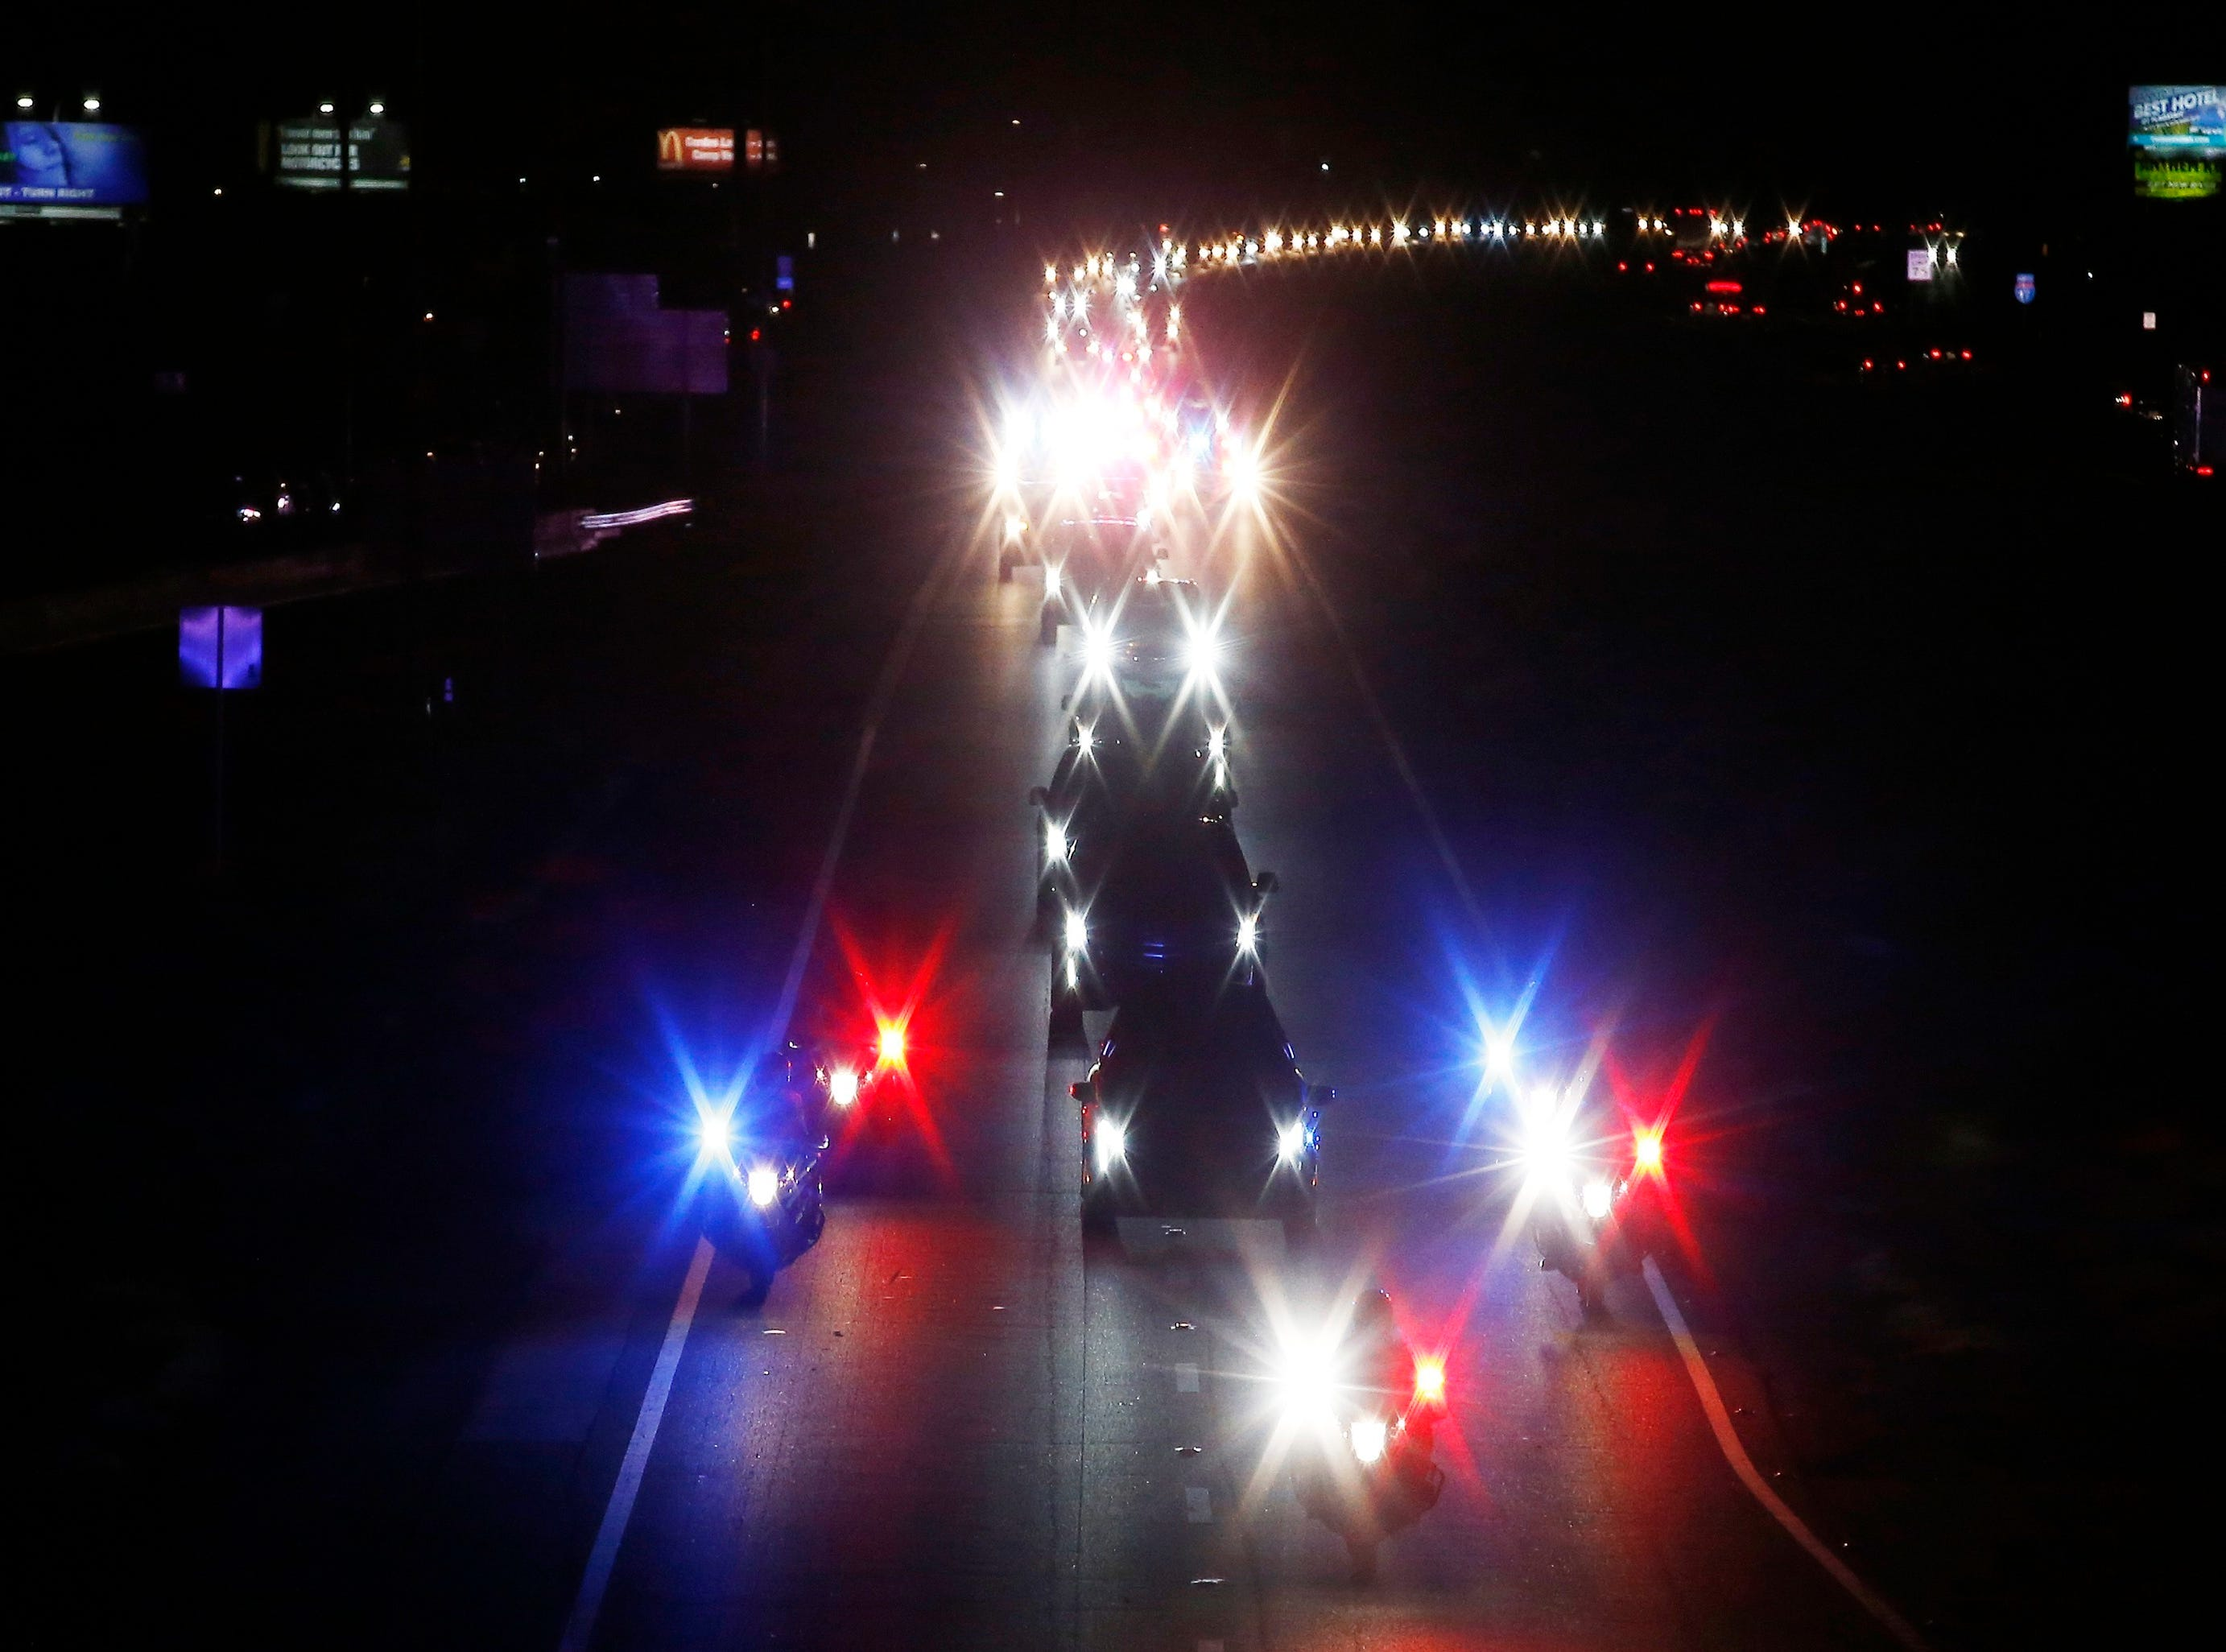 With a police escort, a long procession accompanies the hearse carrying the late Arizona Sen. John McCain along Interstate 17 on the way to Phoenix on Aug. 25, 2018, in Anthem.